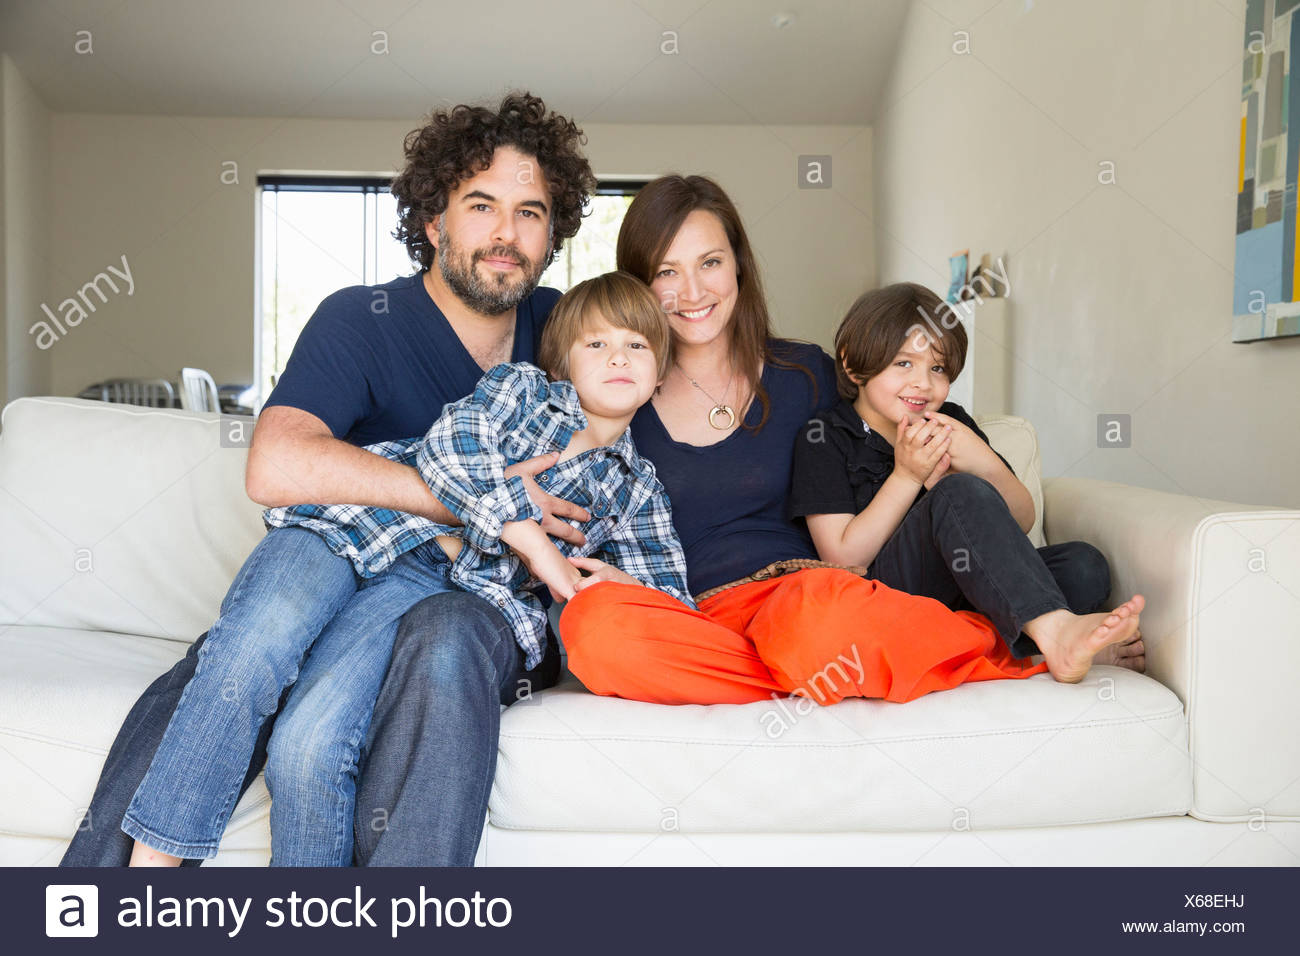 Portrait of family with two boys on sofa - Stock Image